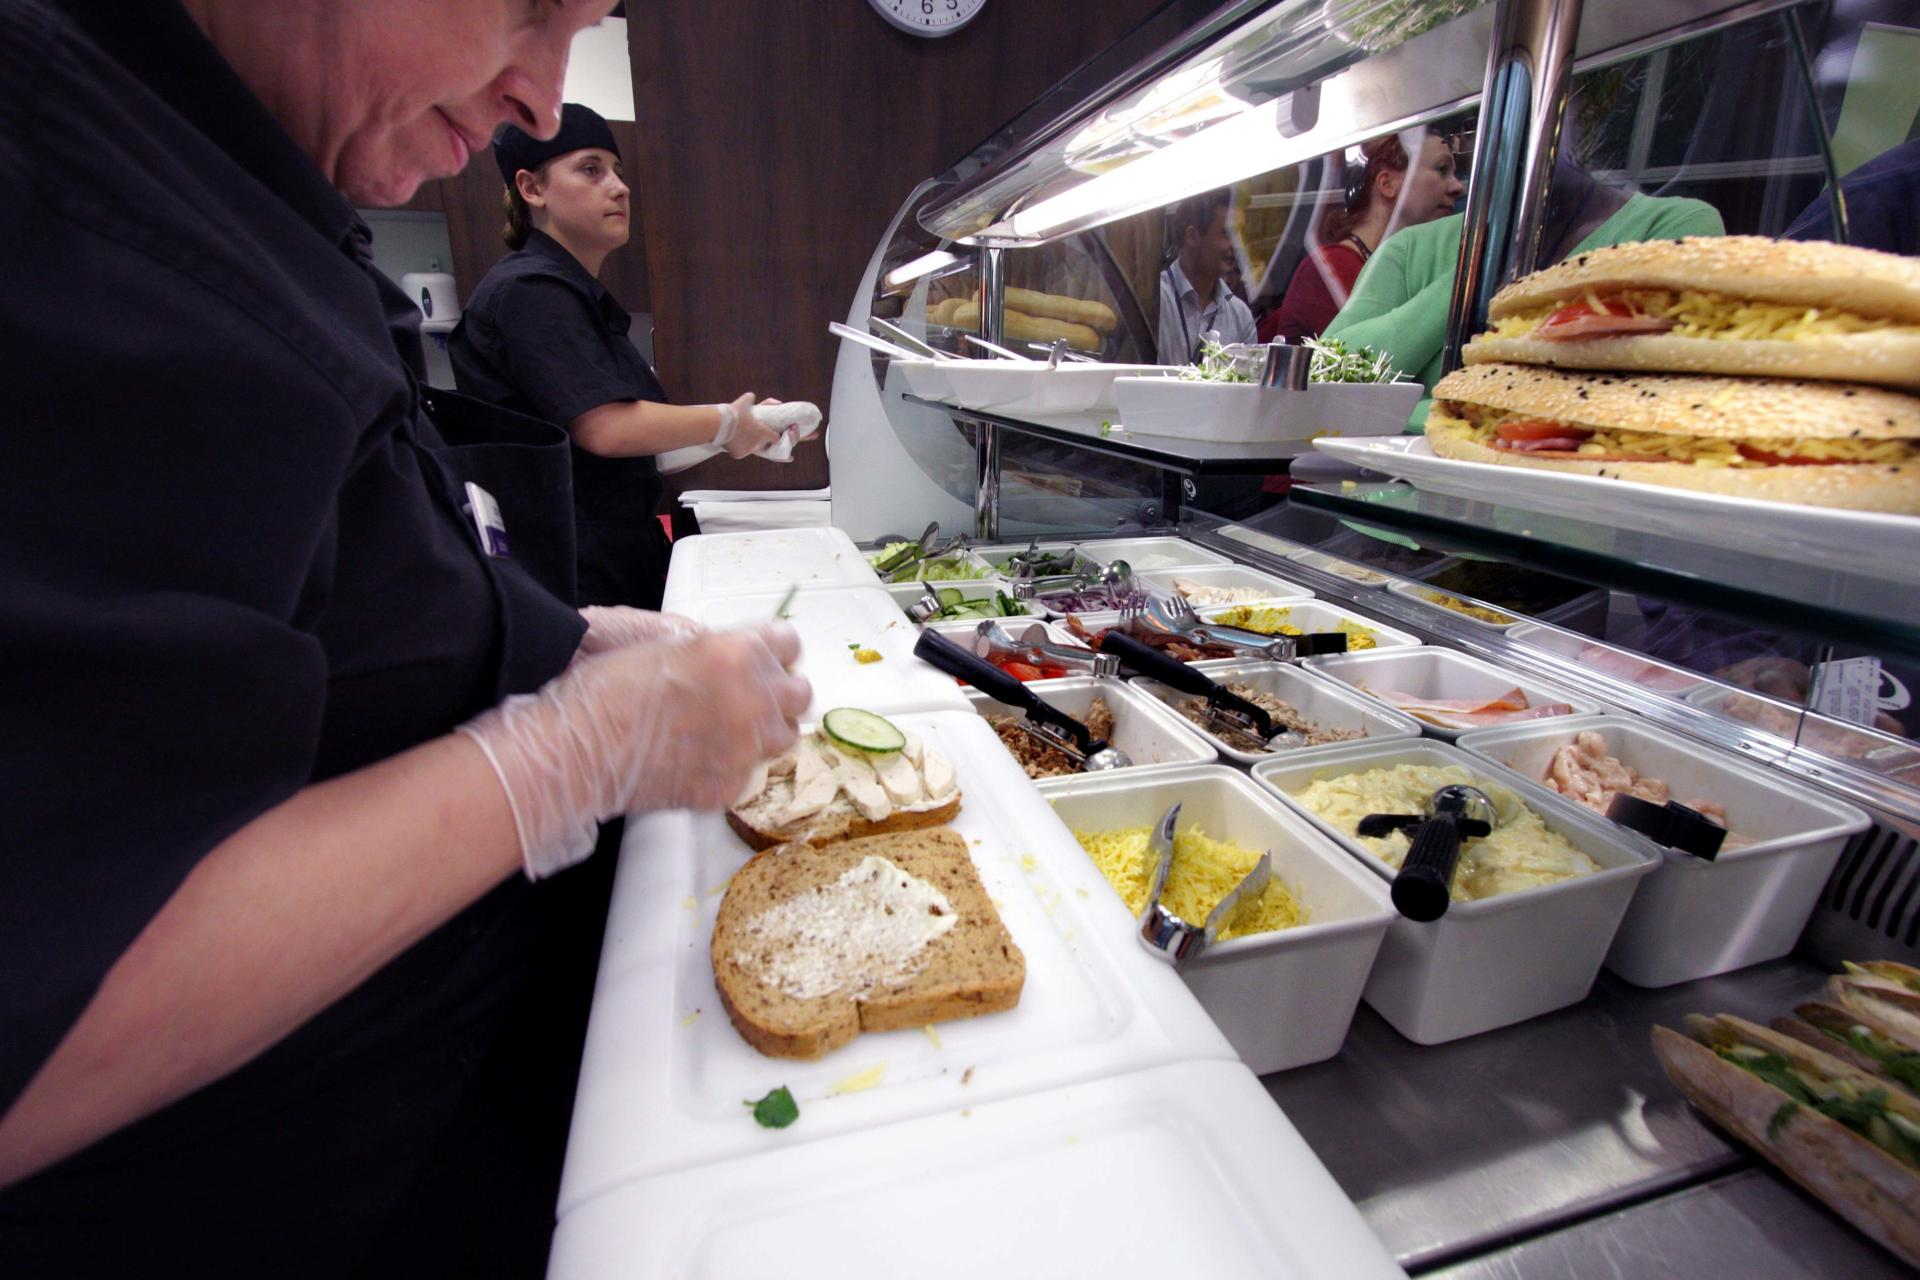 Mars-Sodexo-Slough-Staff-Severy-Front-of-house-Servery-Food-Display-spacecatering_11